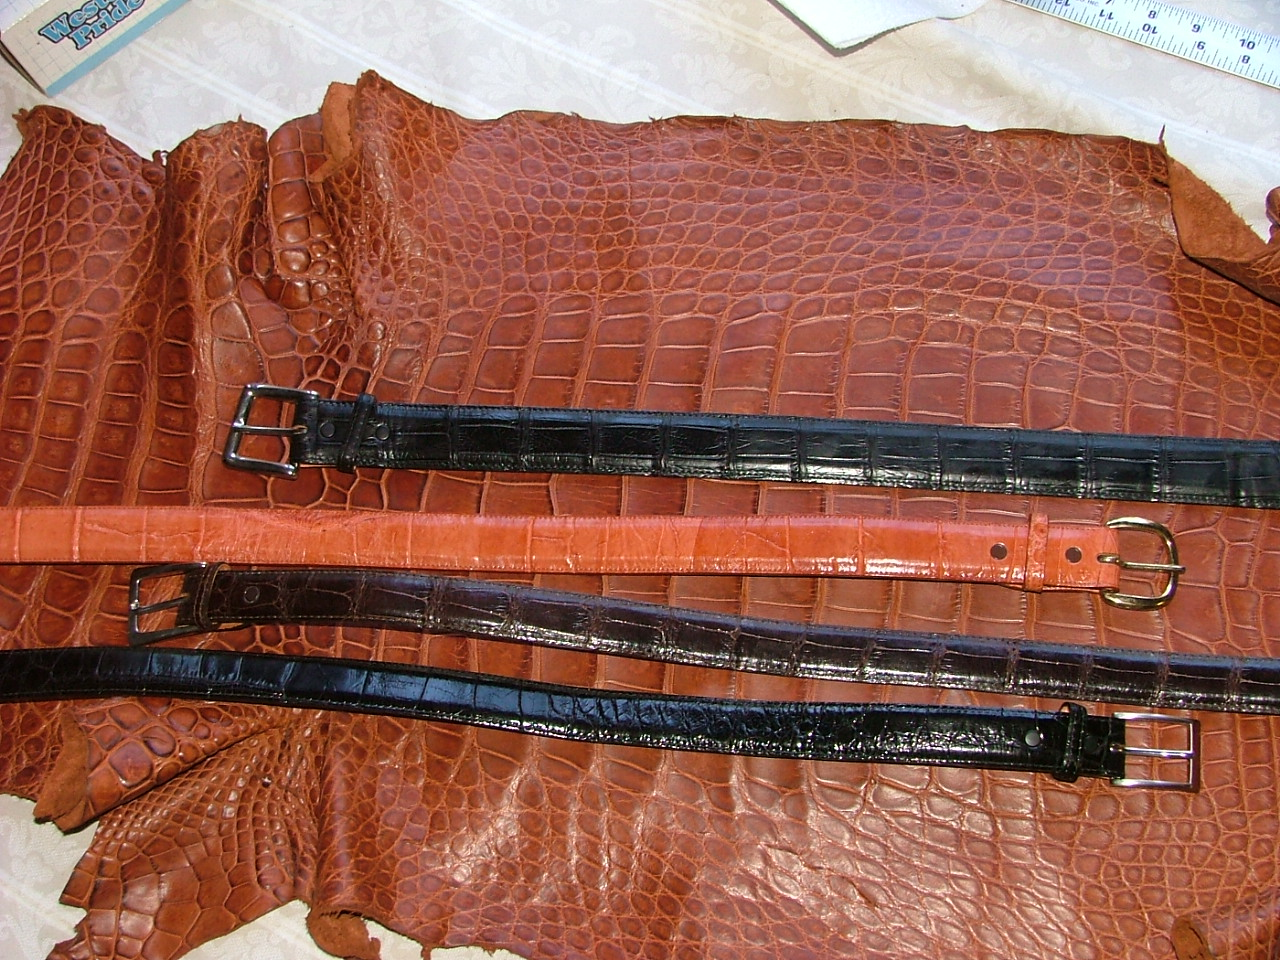 American Alligator Leather 101 Why Genuine Gator Products